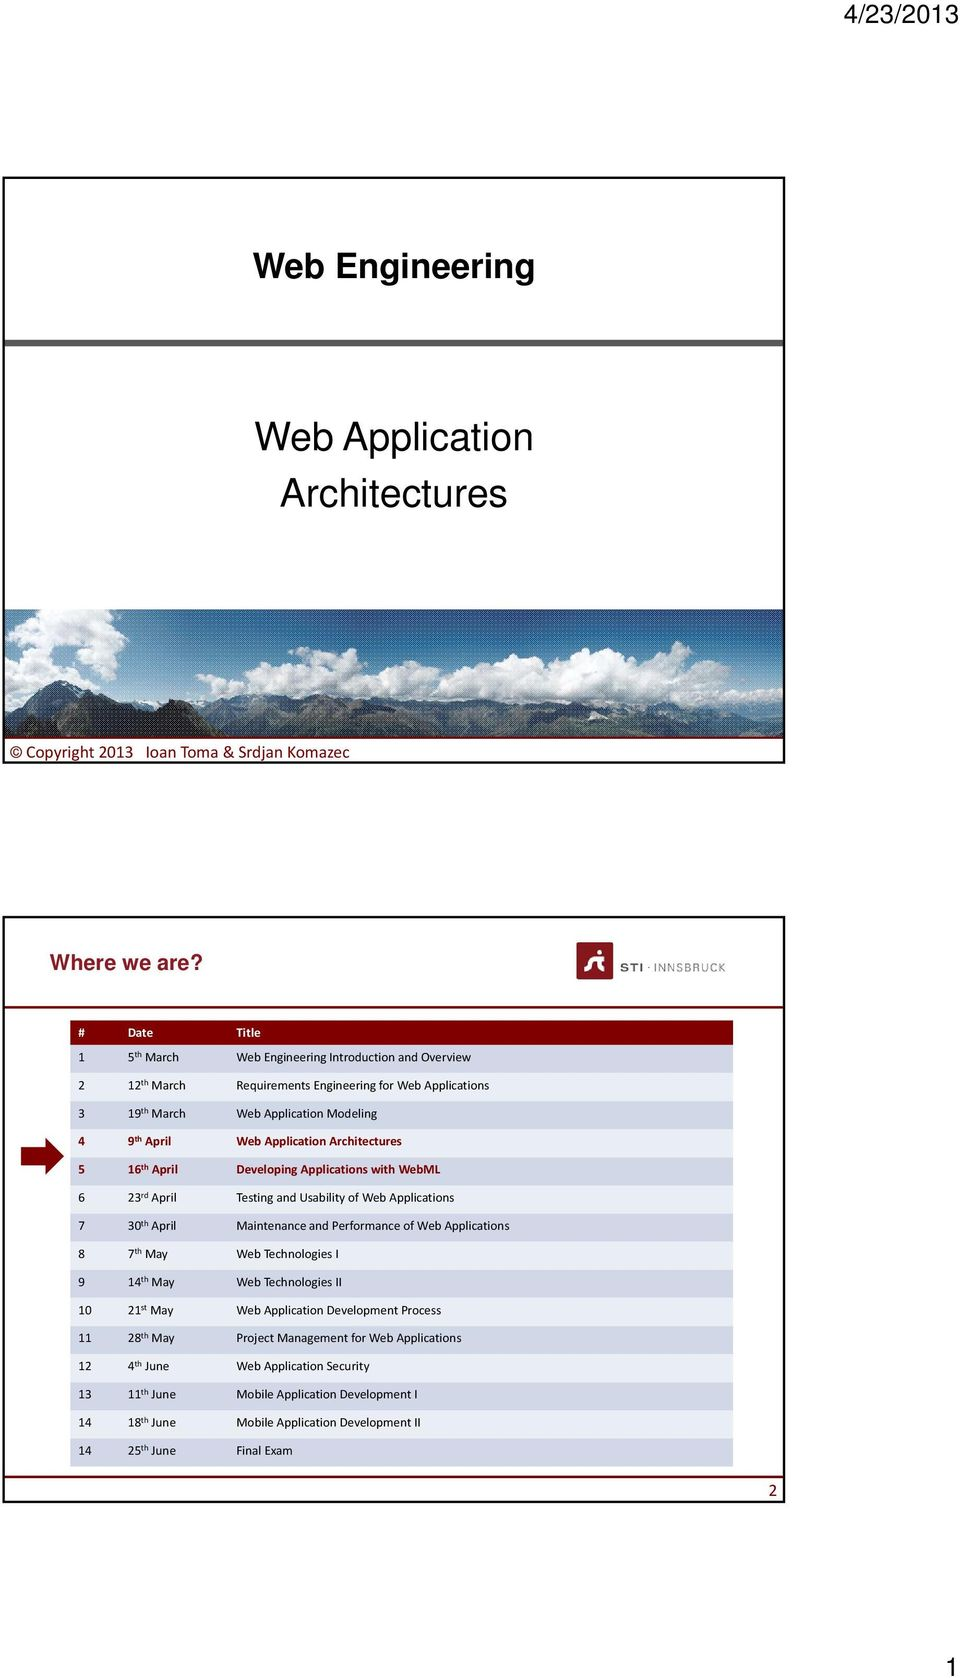 Architectures 5 16 th April Developing Applications with WebML 6 23 rd April Testing and Usability of Web Applications 7 30 th April Maintenance and Performance of Web Applications 8 7 th May Web